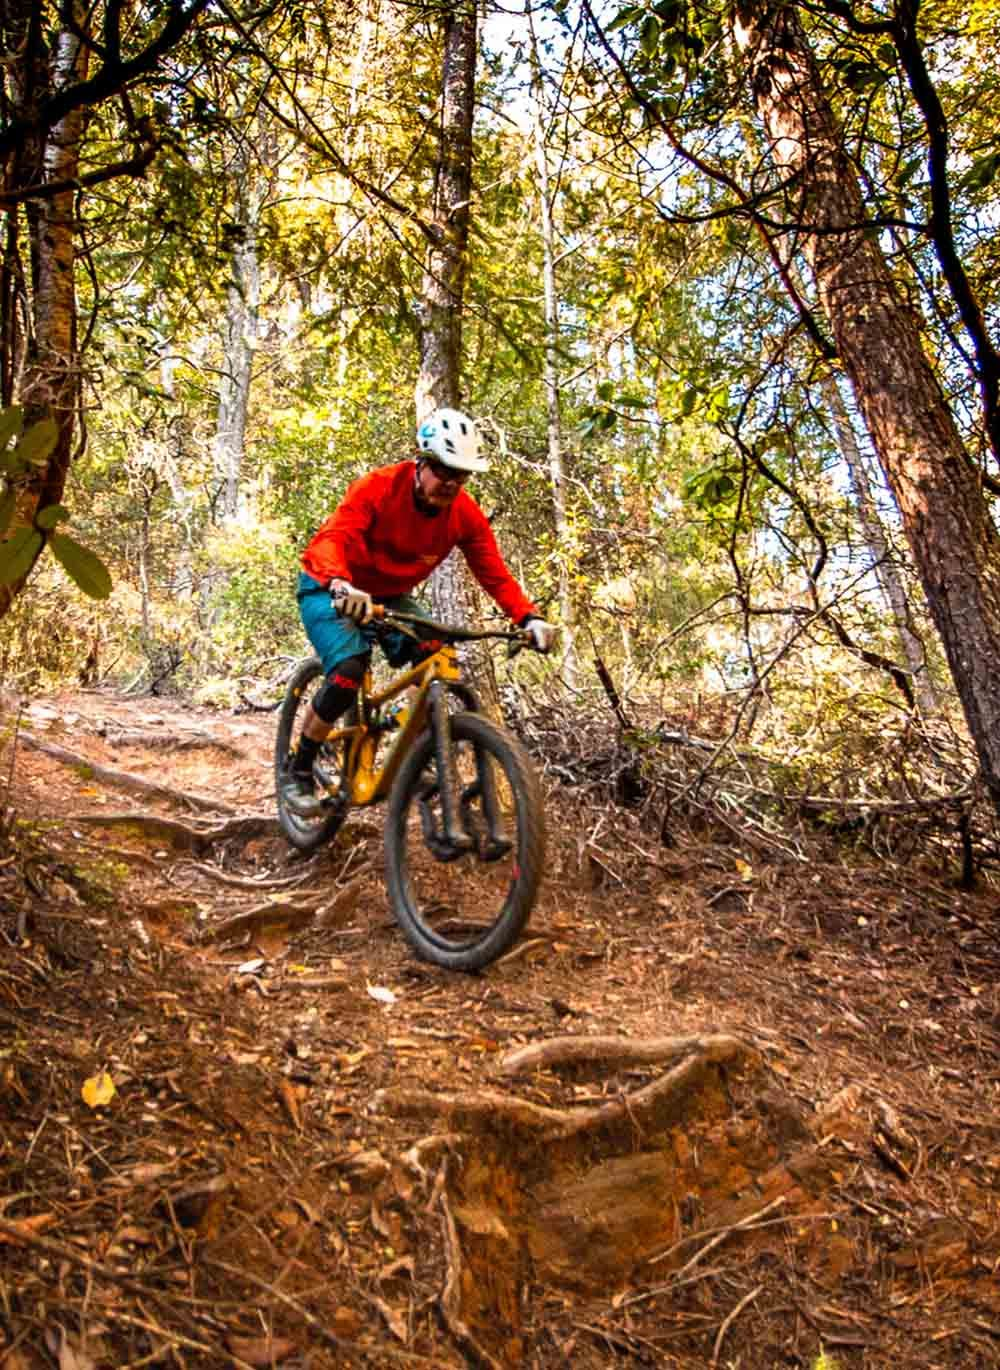 Bobby McMullen descending roots on his mountain bike